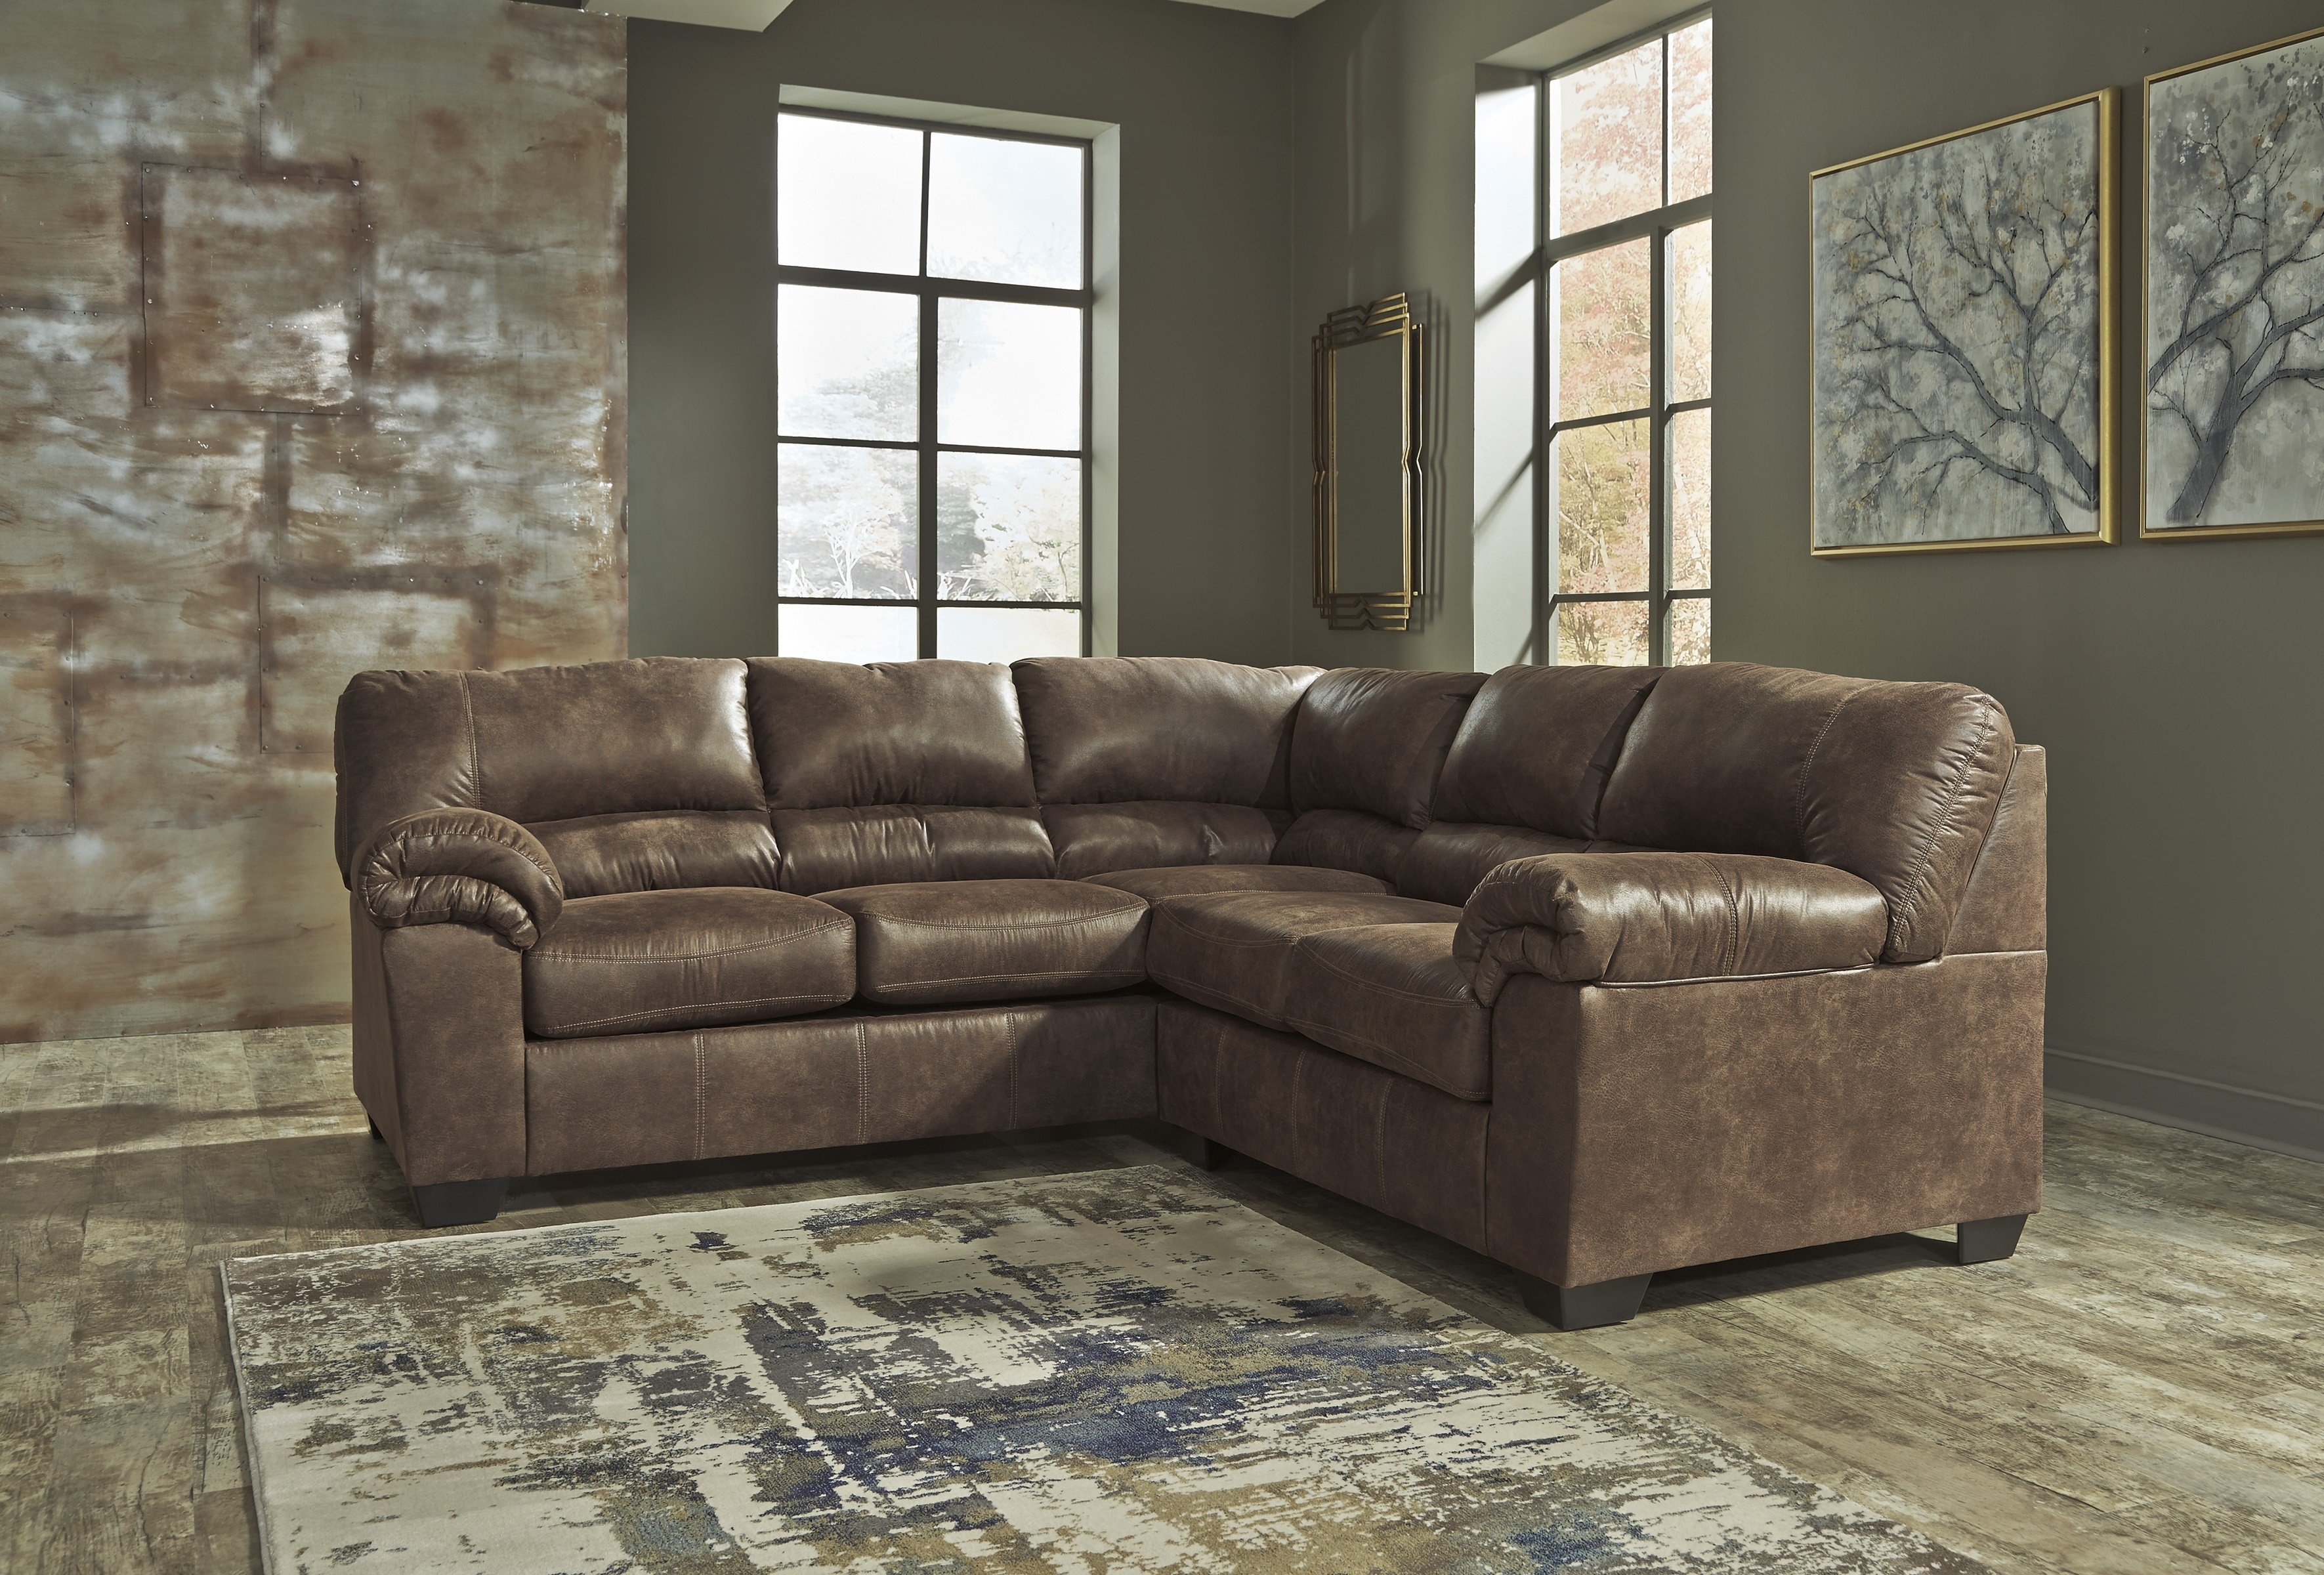 Laf Sofa Raf Loveseat | Baci Living Room In Turdur 2 Piece Sectionals With Laf Loveseat (Image 11 of 25)